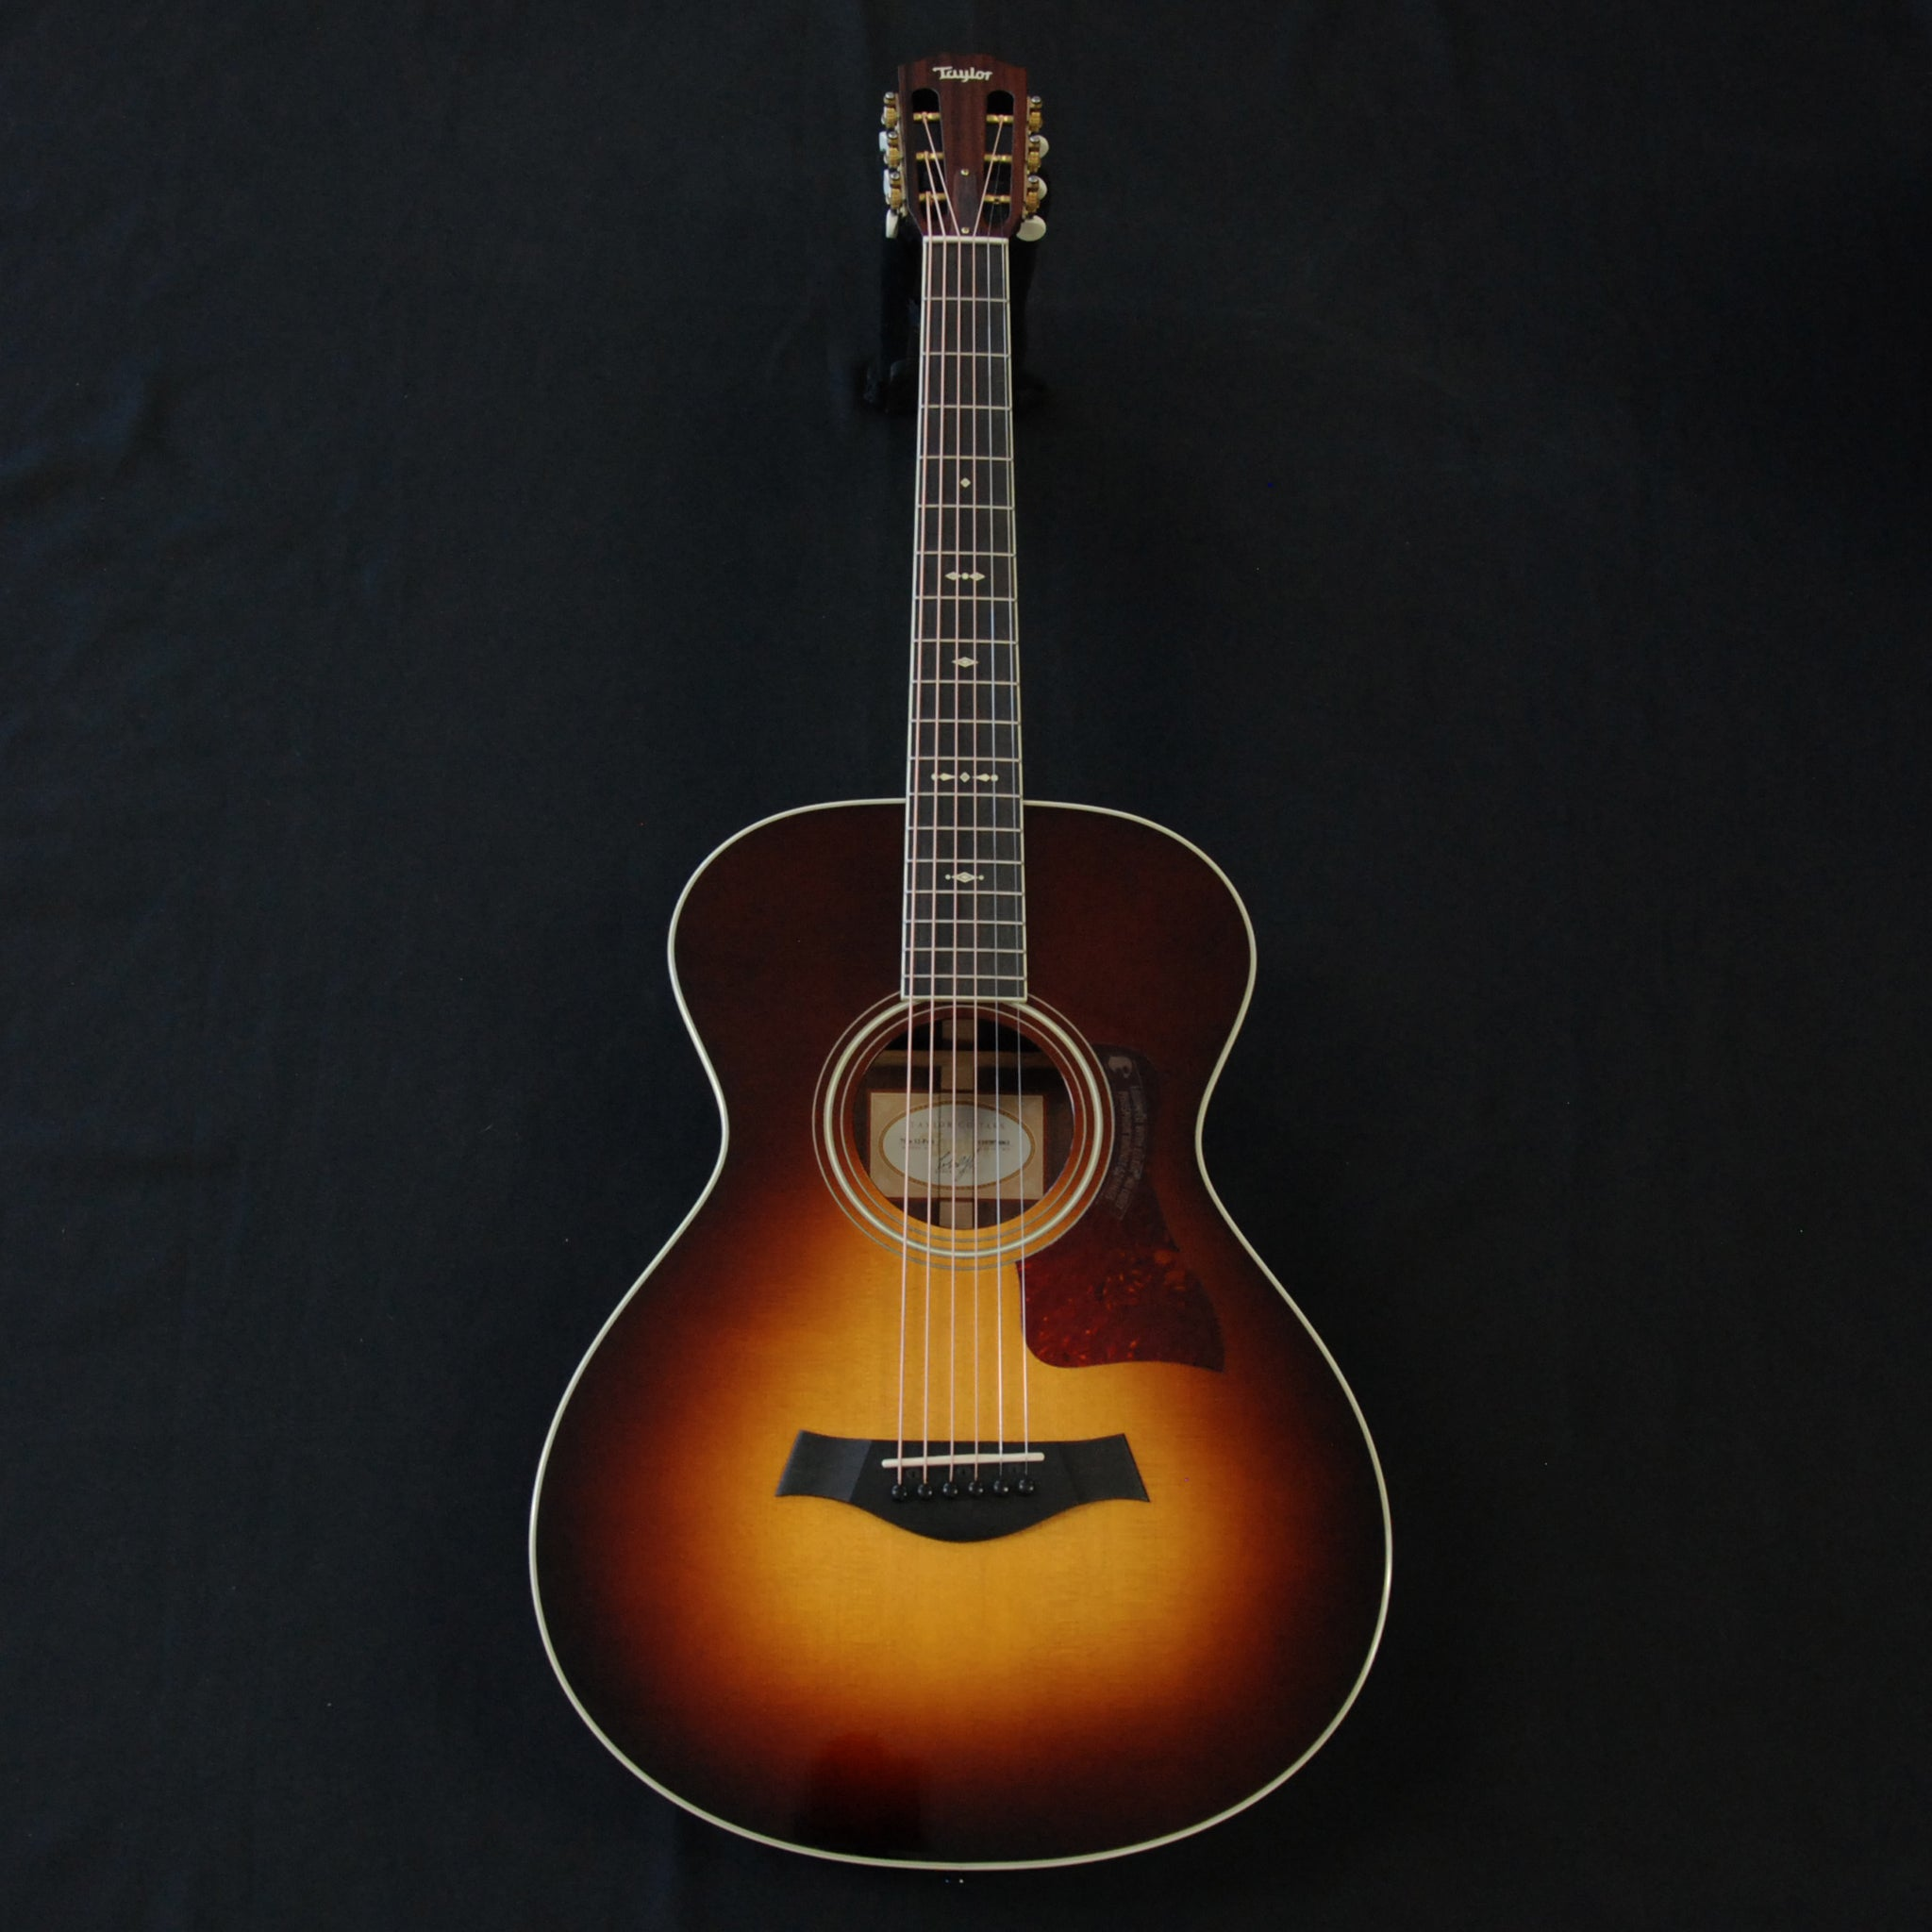 Shop online for Taylor 712E Vintage Sunburst Concert 12 Fret today.  Now available for purchase from Midlothian Music of Orland Park, Illinois, USA